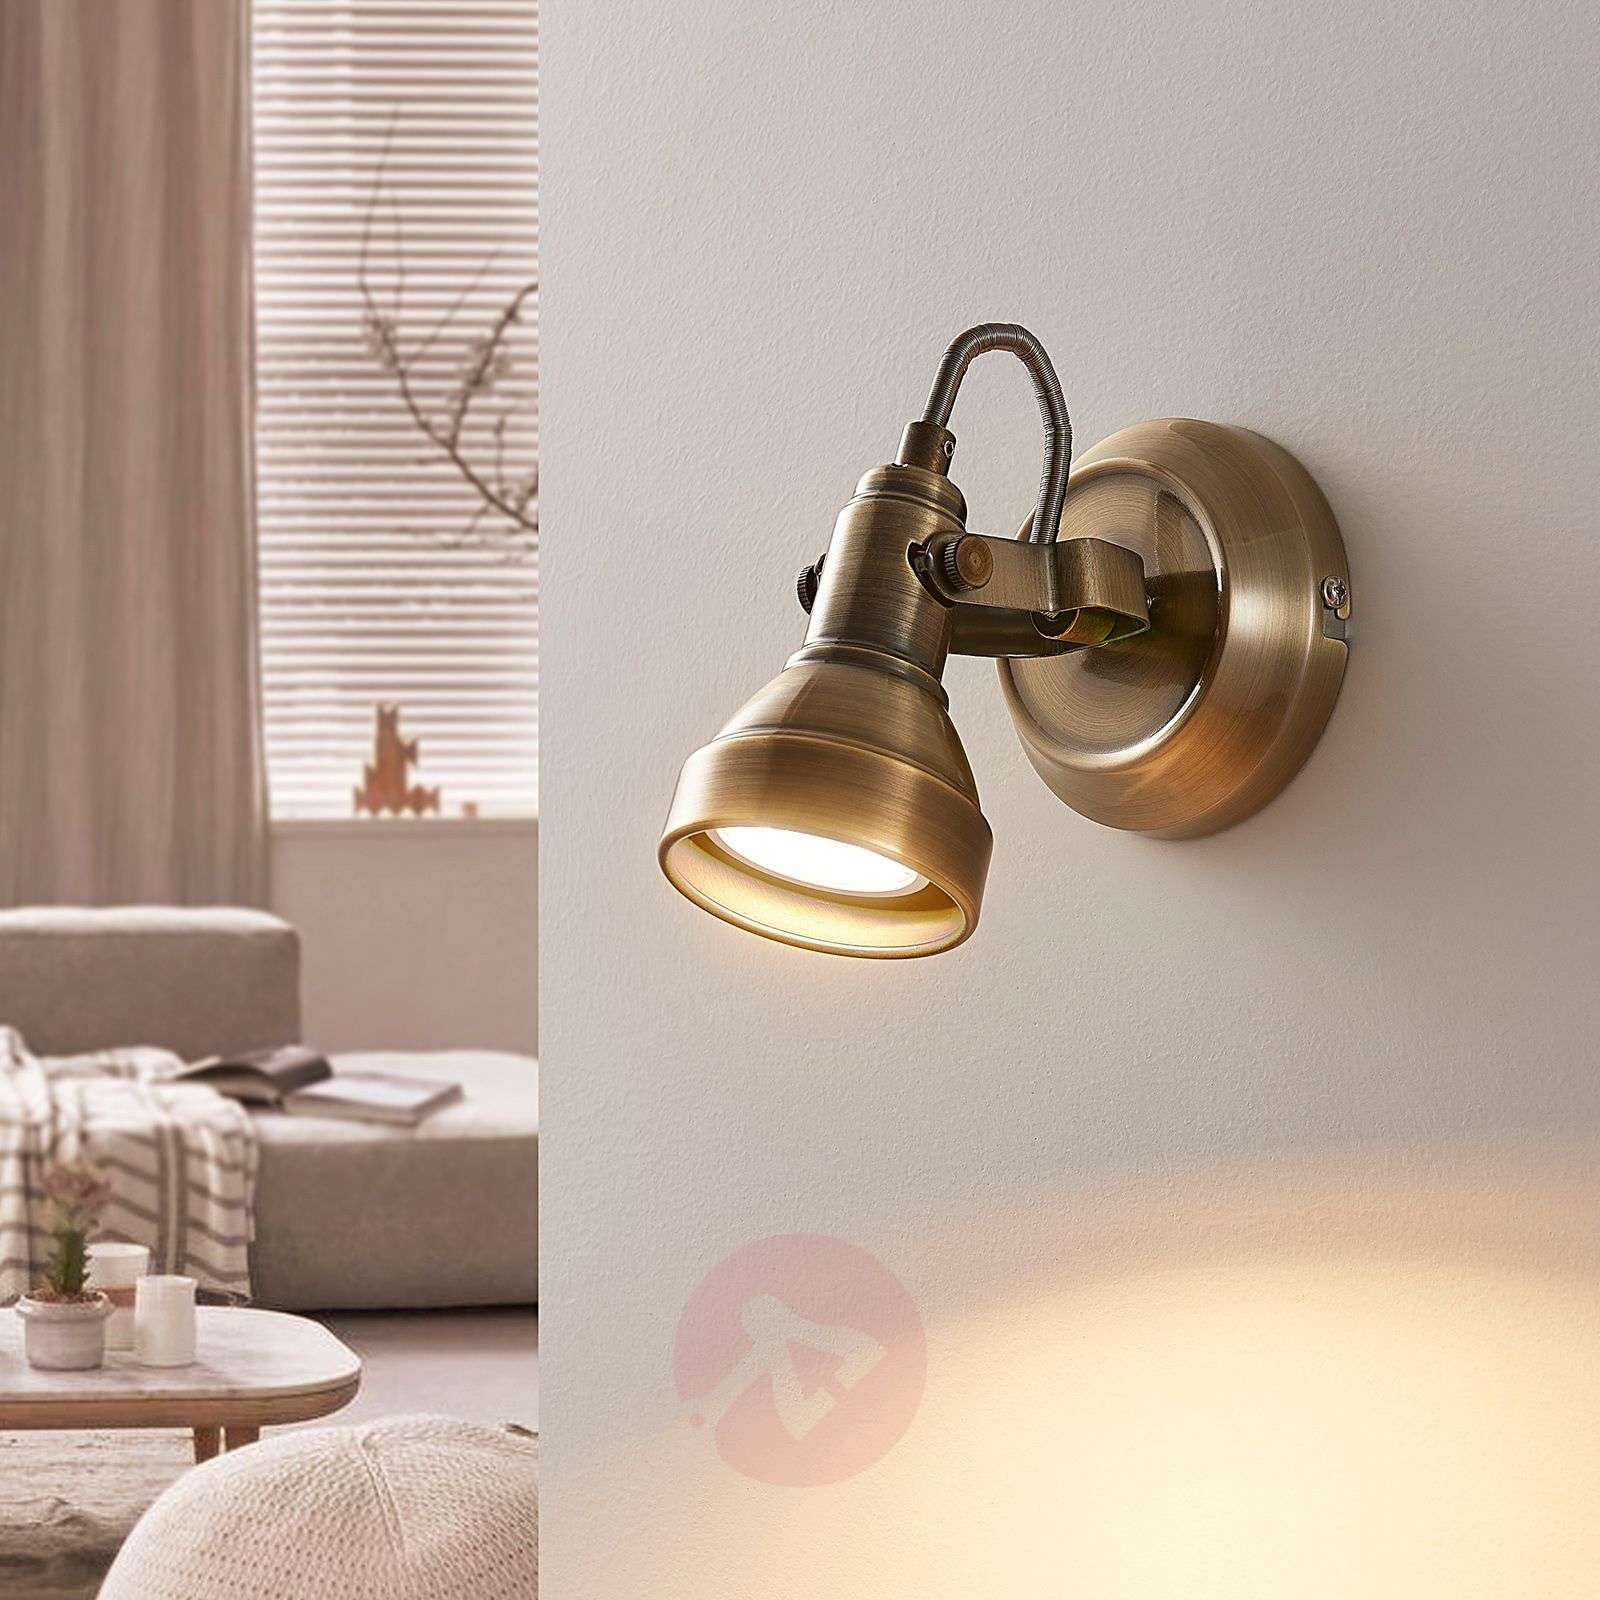 Perseas led wall spotlight antique brass lights perseas led wall spotlight antique brass 9620243 01 aloadofball Images